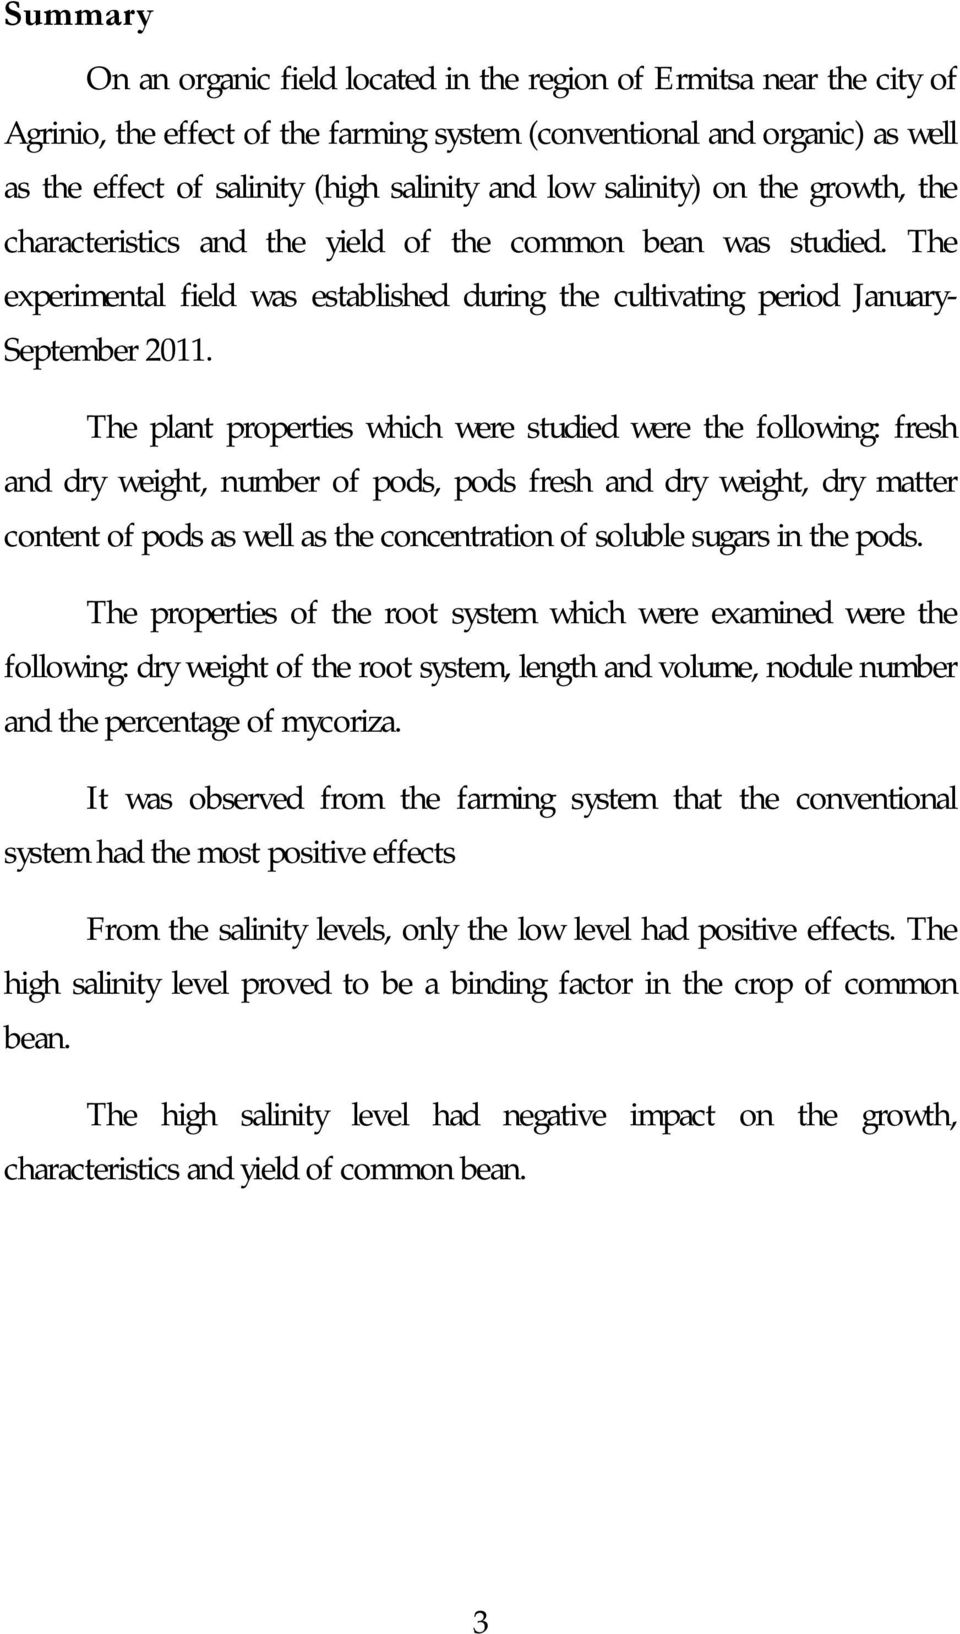 The plant properties which were studied were the following: fresh and dry weight, number of pods, pods fresh and dry weight, dry matter content of pods as well as the concentration of soluble sugars